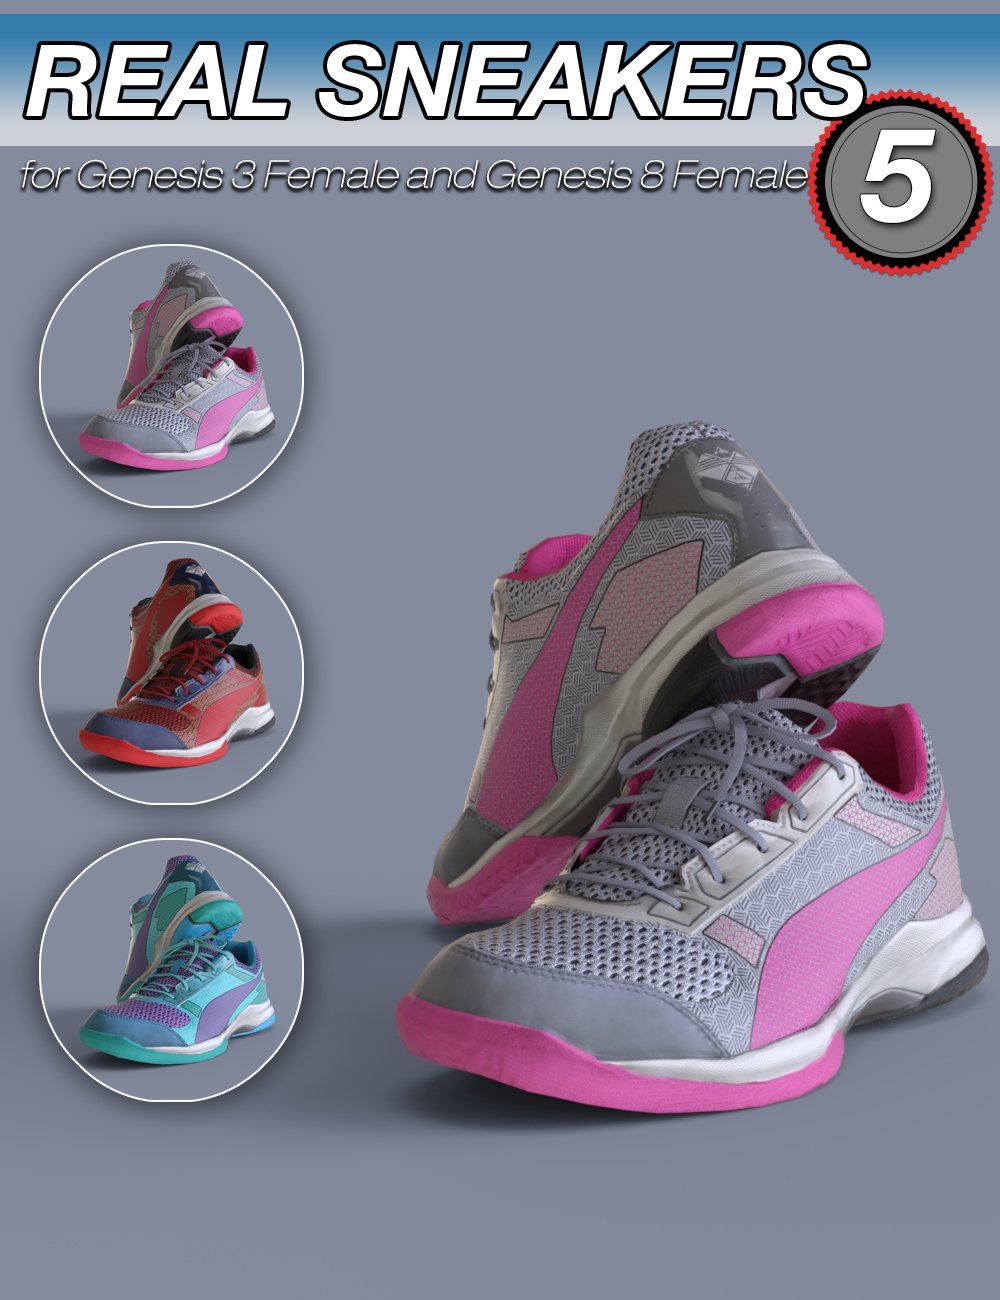 S3D Real Sneakers 5 for Genesis 3 and 8 Female(s) by: Slide3D, 3D Models by Daz 3D